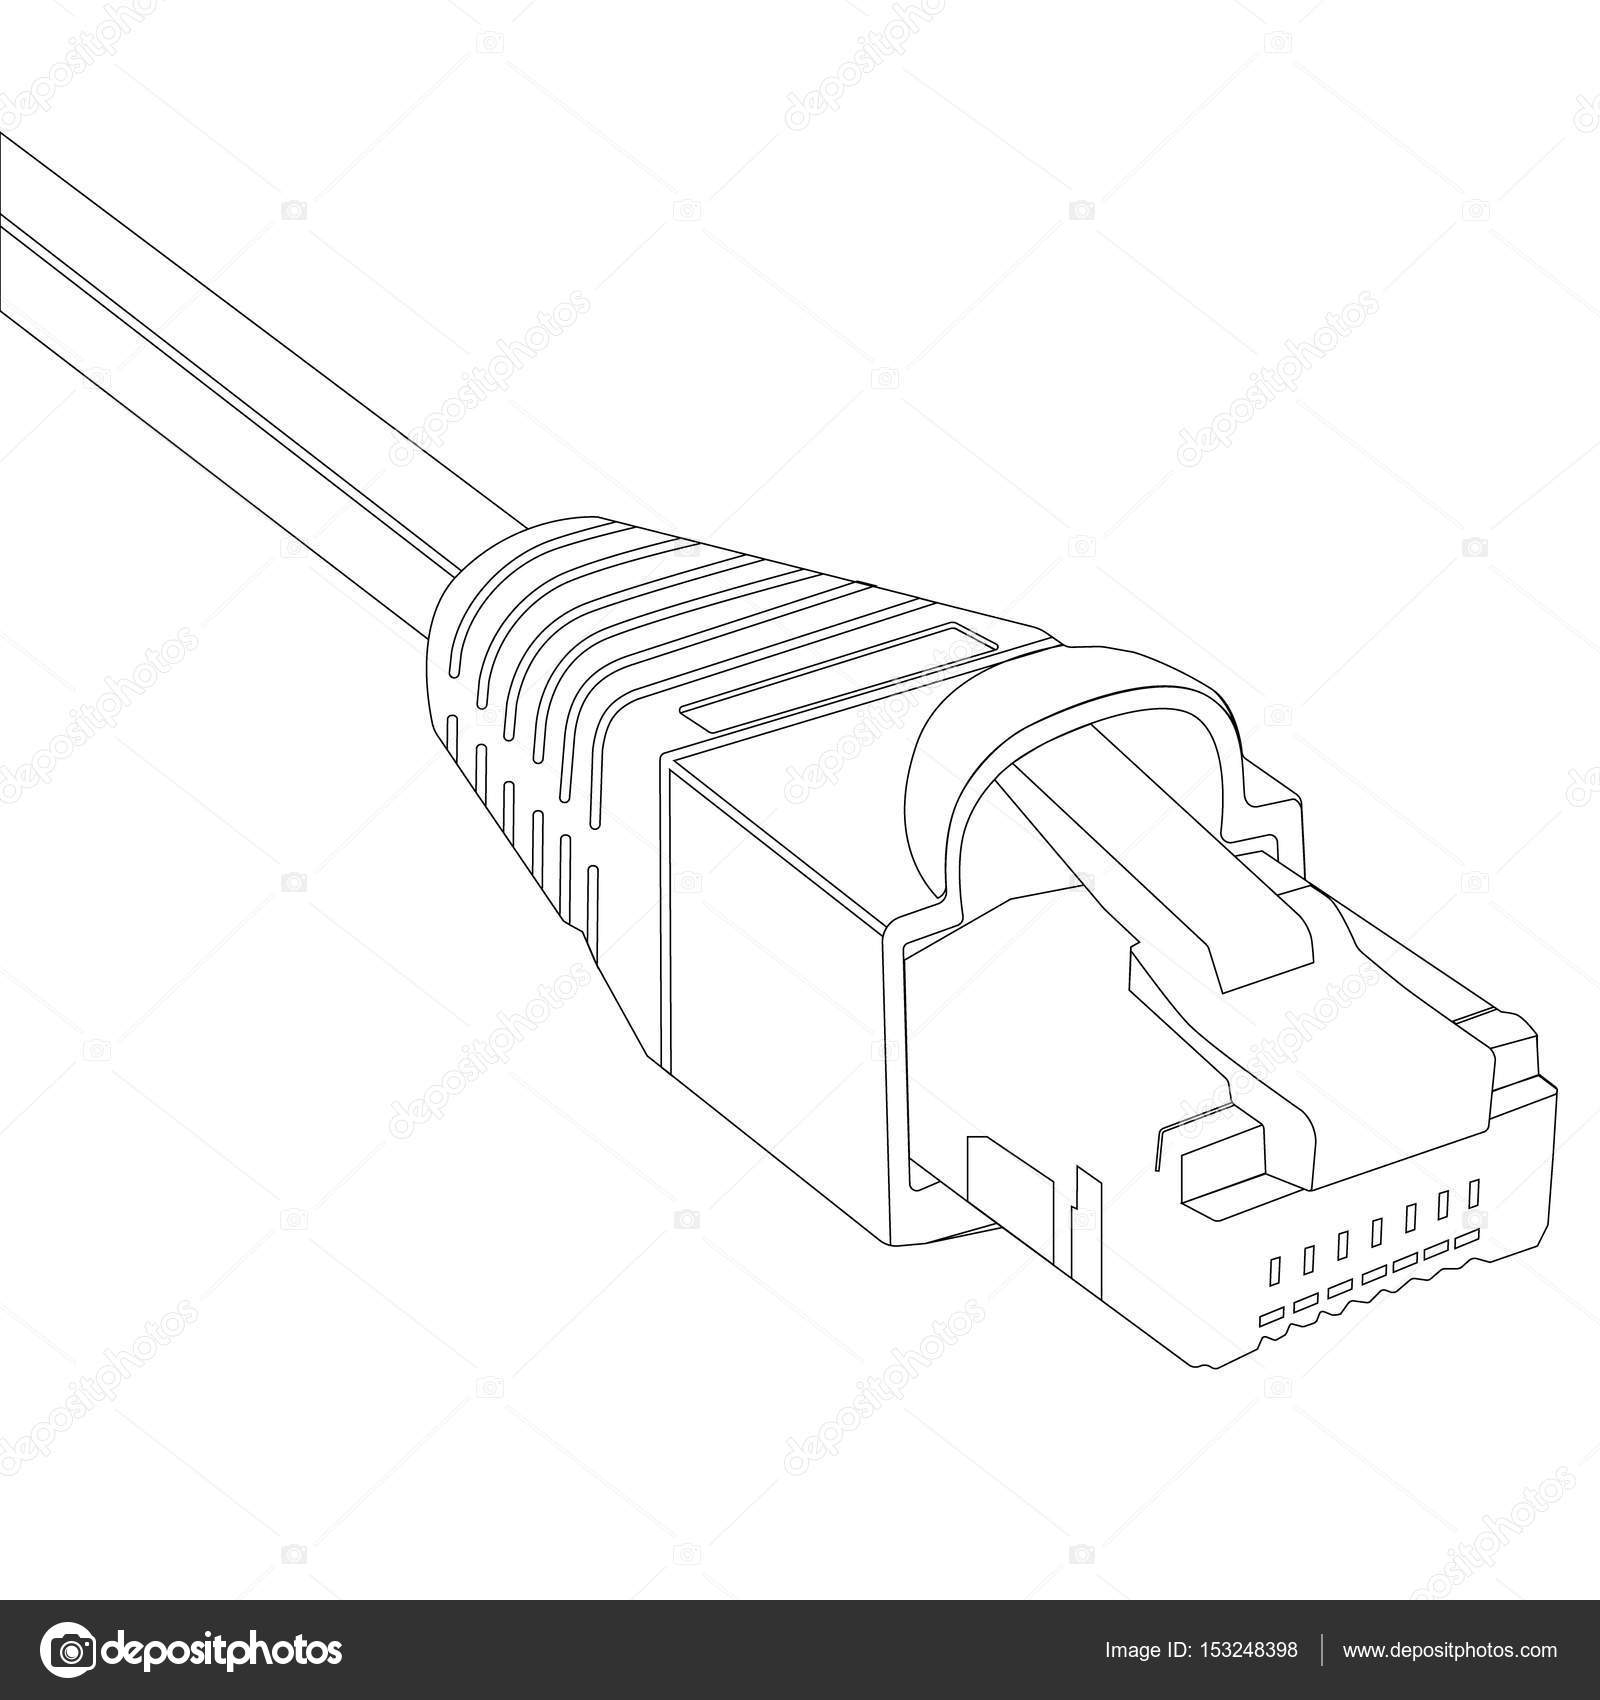 hight resolution of raster illustration outline drawing ethernet network cable cable icon ethernet connector for mobile apps web sites photo by viktorijareut